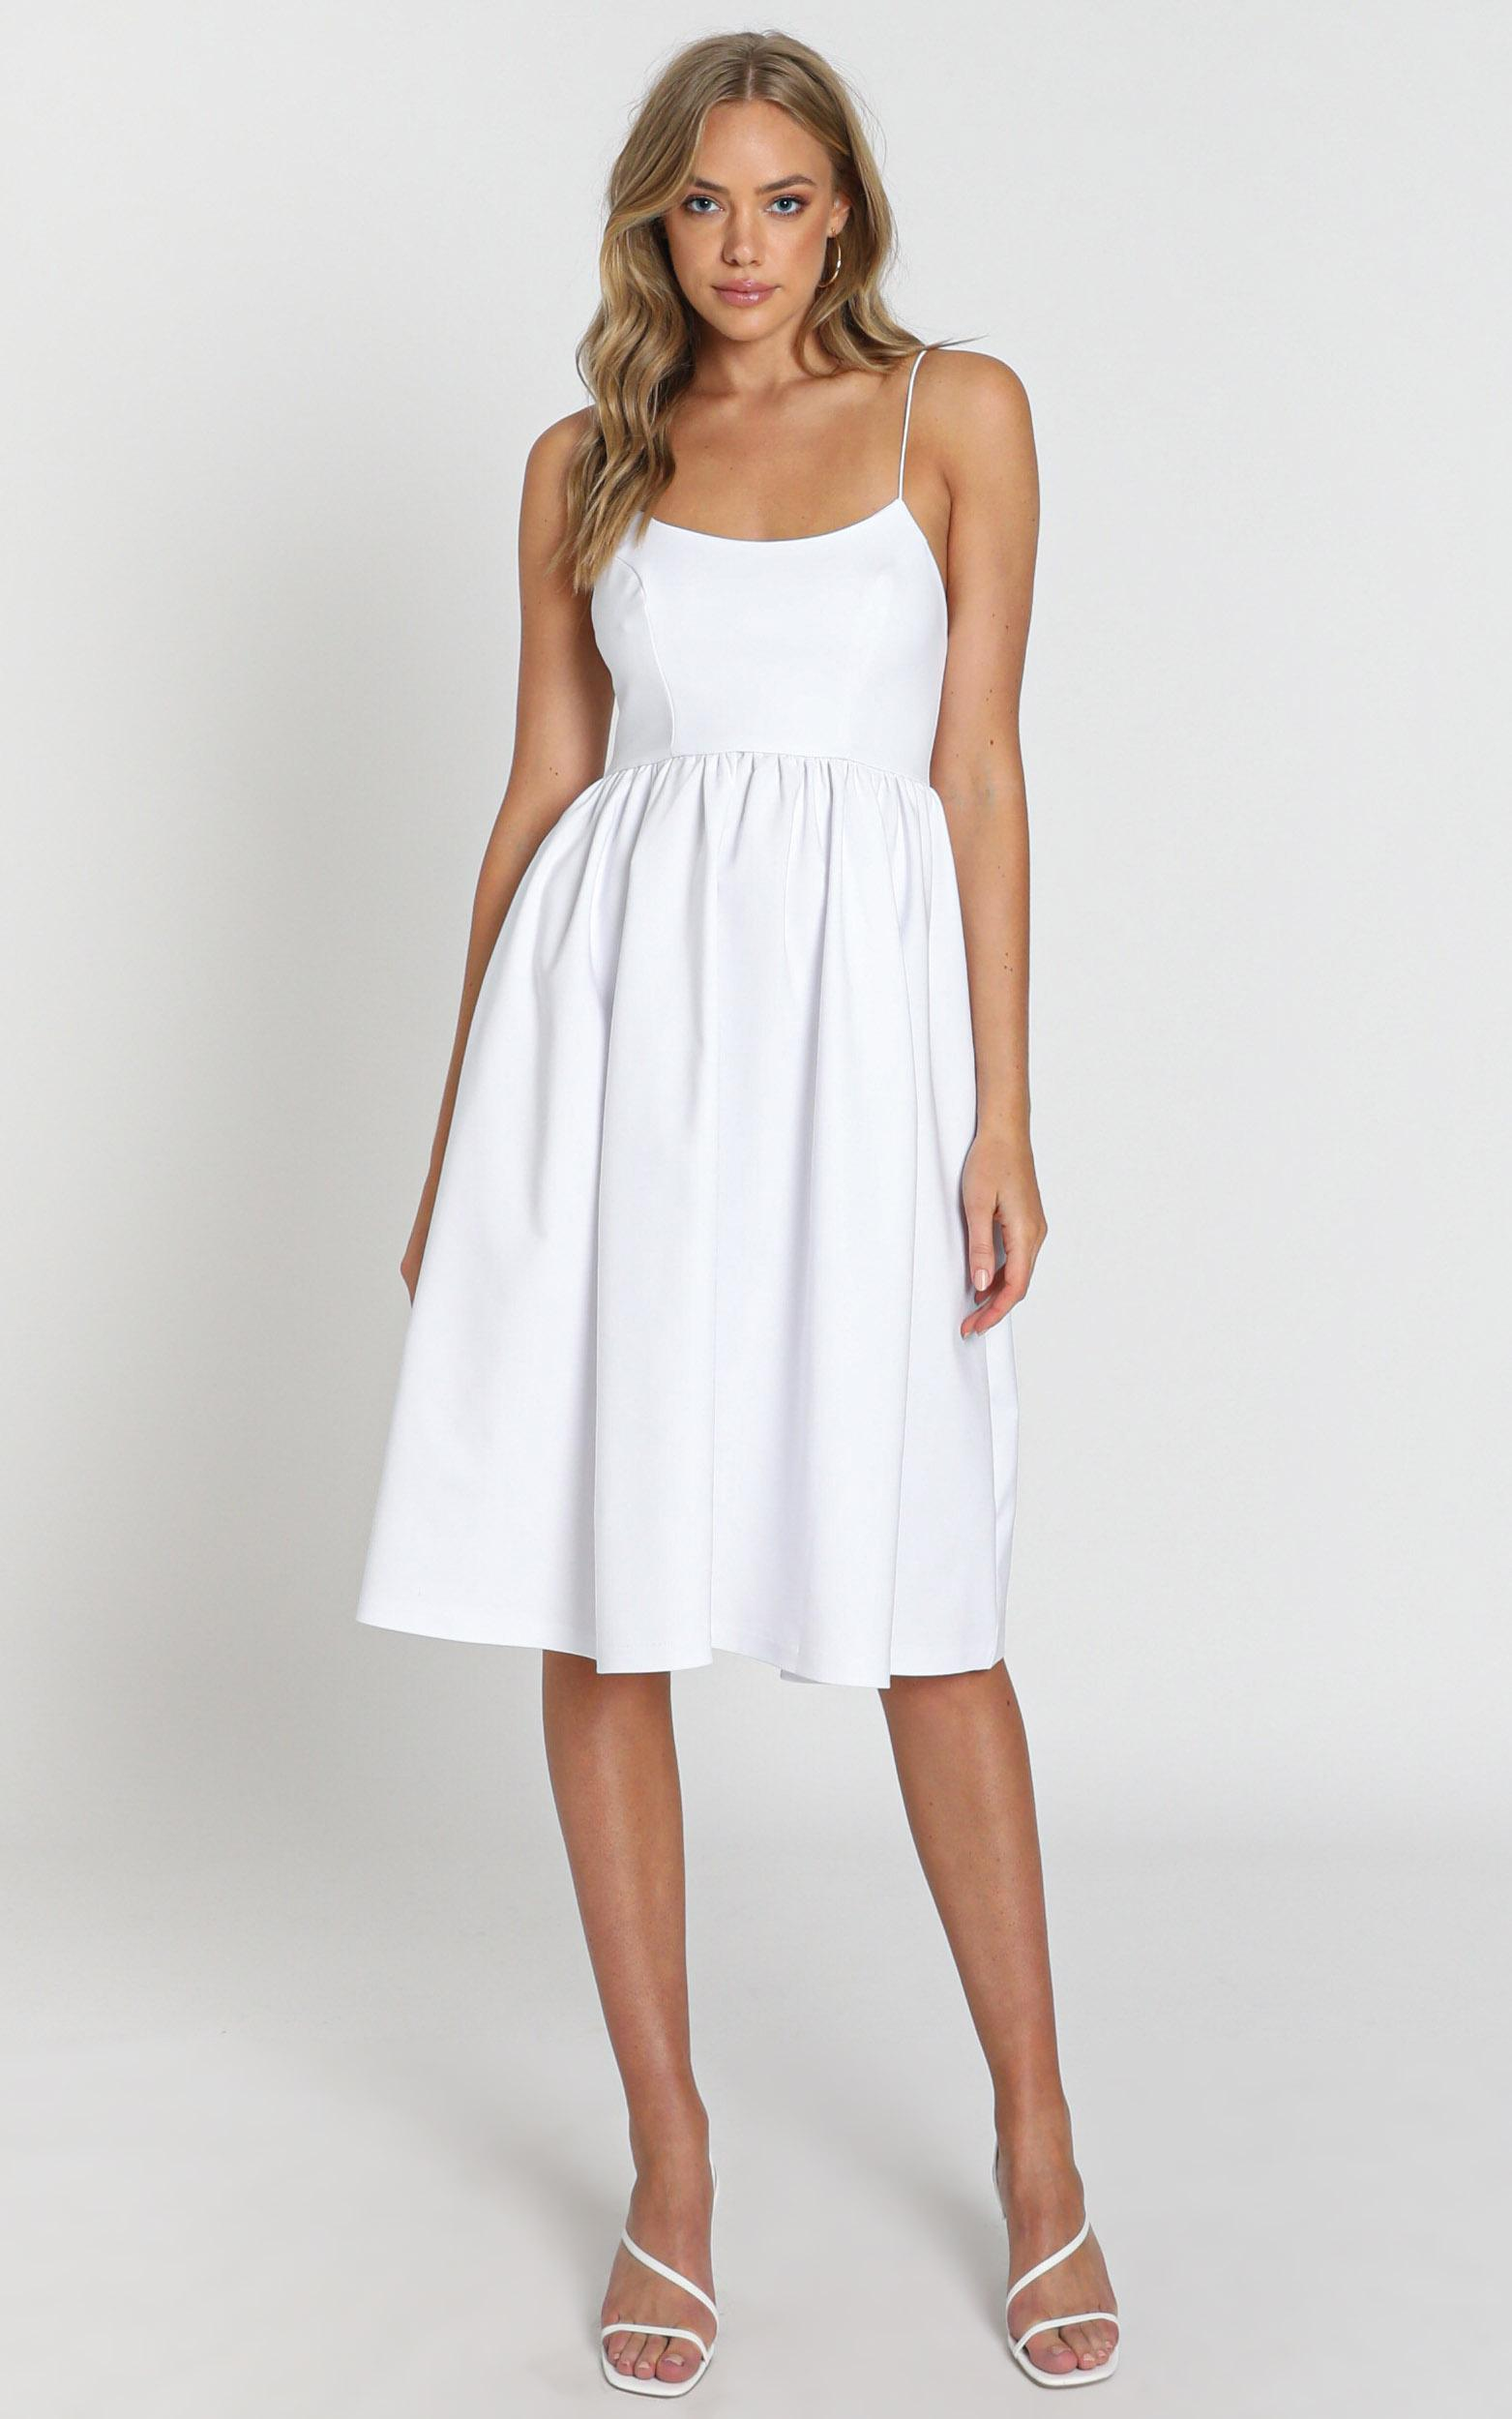 Wild Nights Dress in white - 6 (XS), White, hi-res image number null